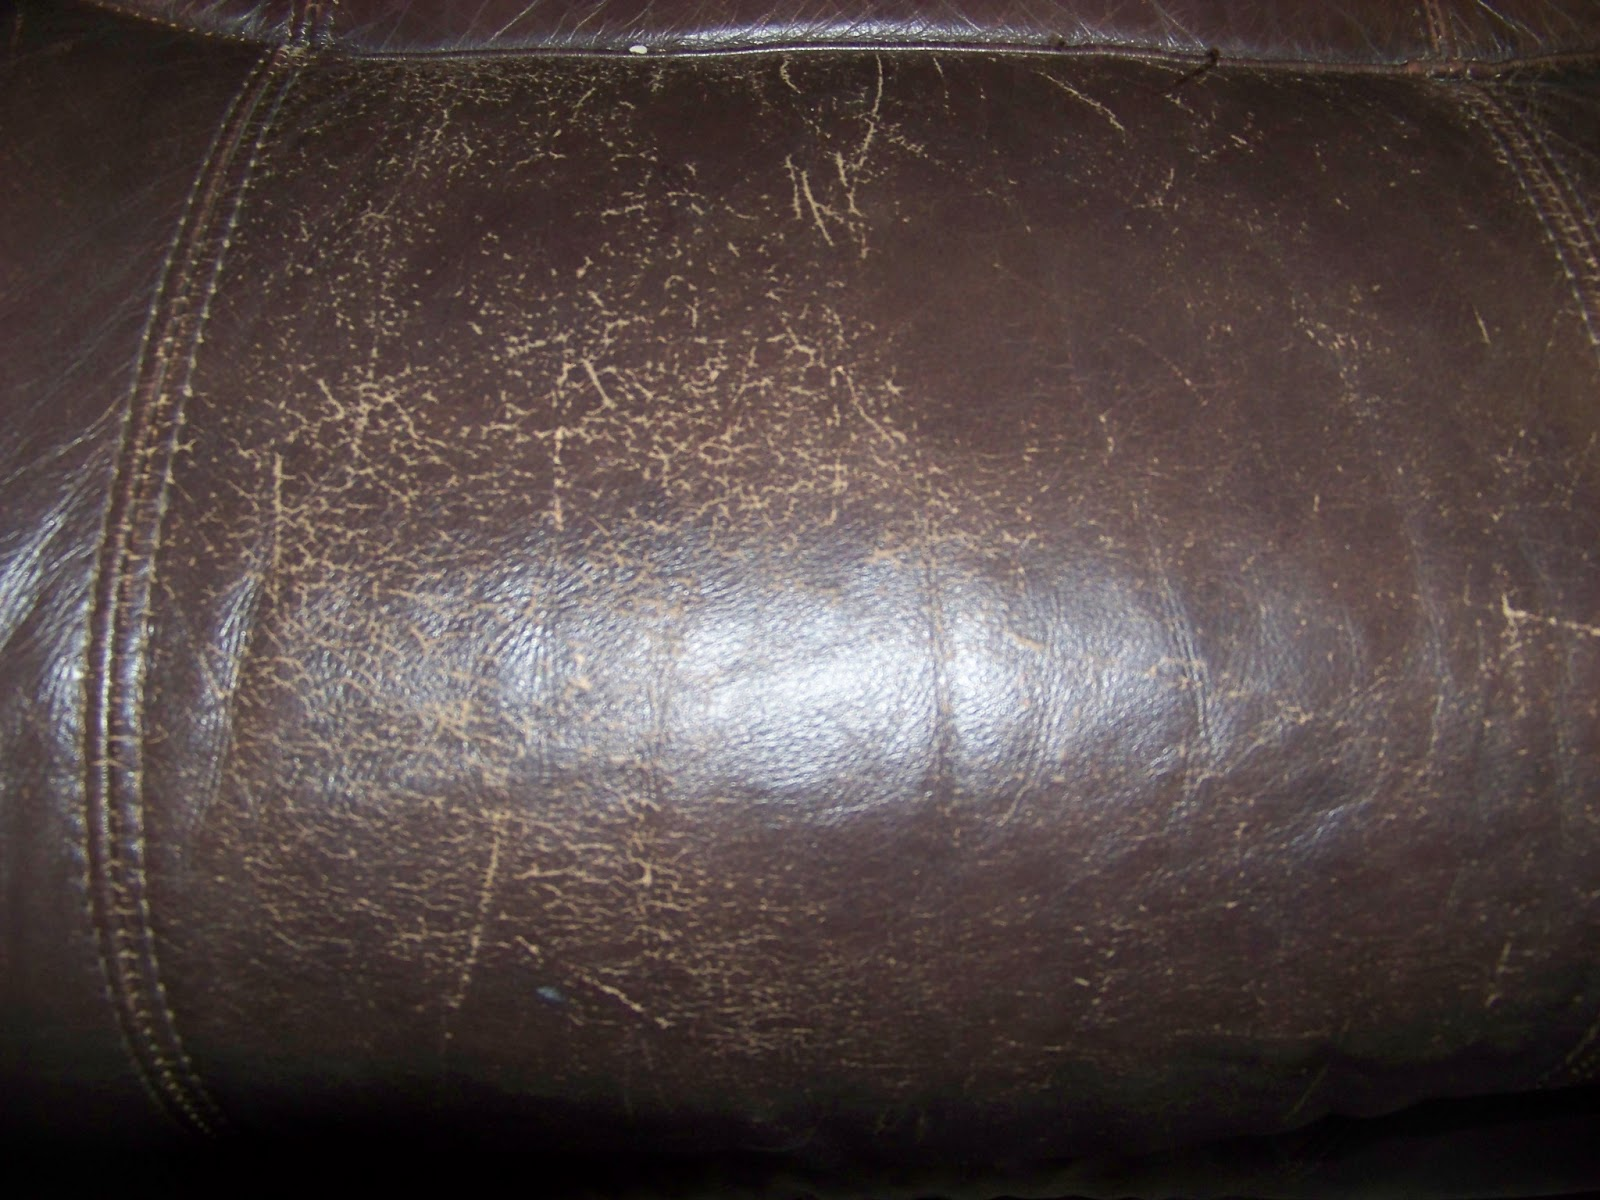 The Sunset Lane Repairing Worn Leather With Shoe Polish